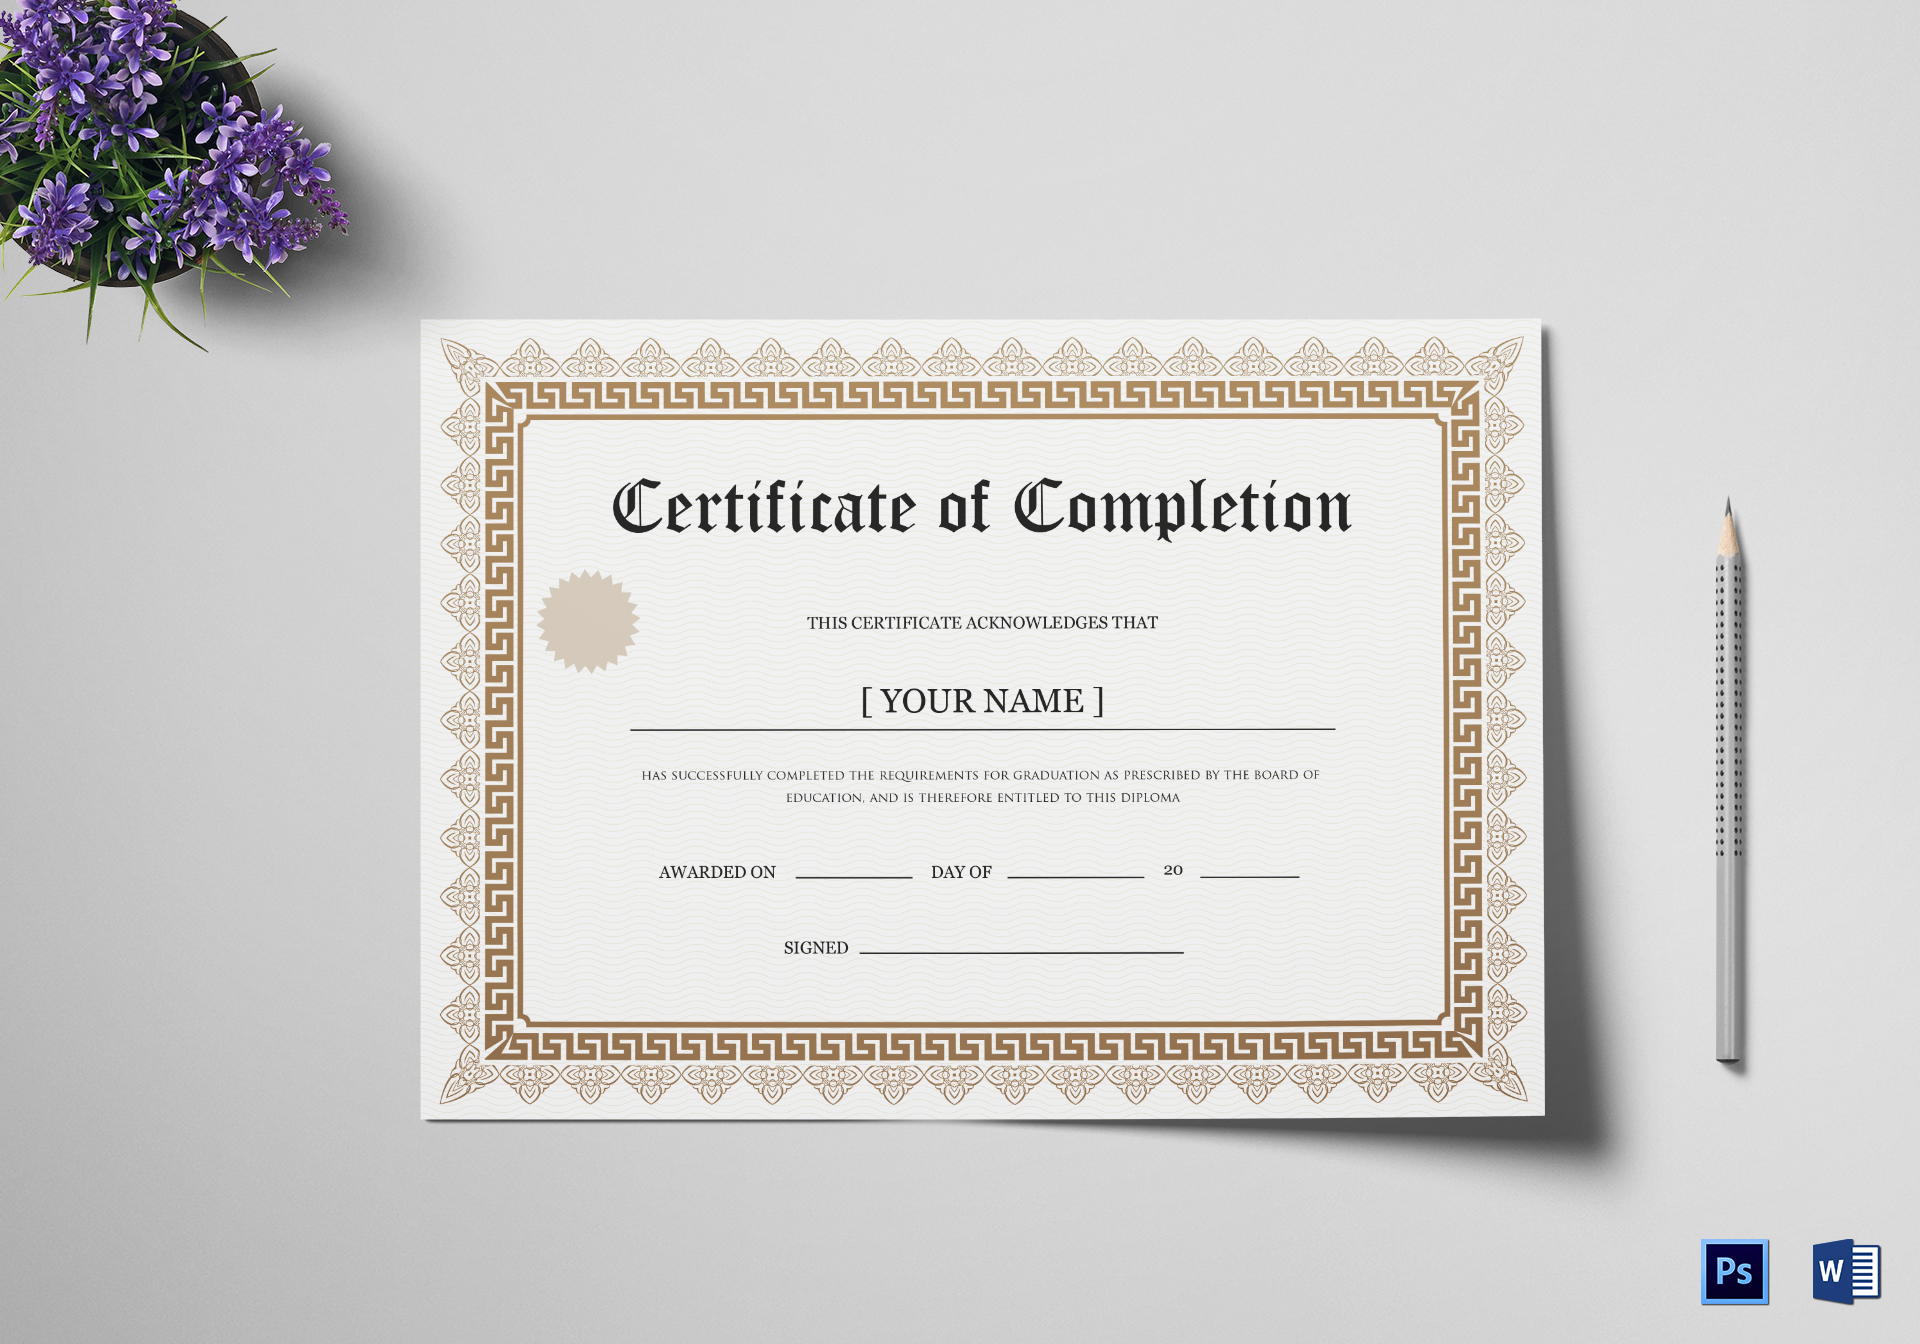 Bachelor Degree Completion Certificate Design Template In. Free Pattern Clerk Cover Letter. E Wedding Invitation. Free Birth Announcement Template. 30 Second Elevator Speech Template. Food Truck Layout Template. Southern University Graduate School. University Of Wisconsin Madison Graduate School. Bipolar Mood Chart Template